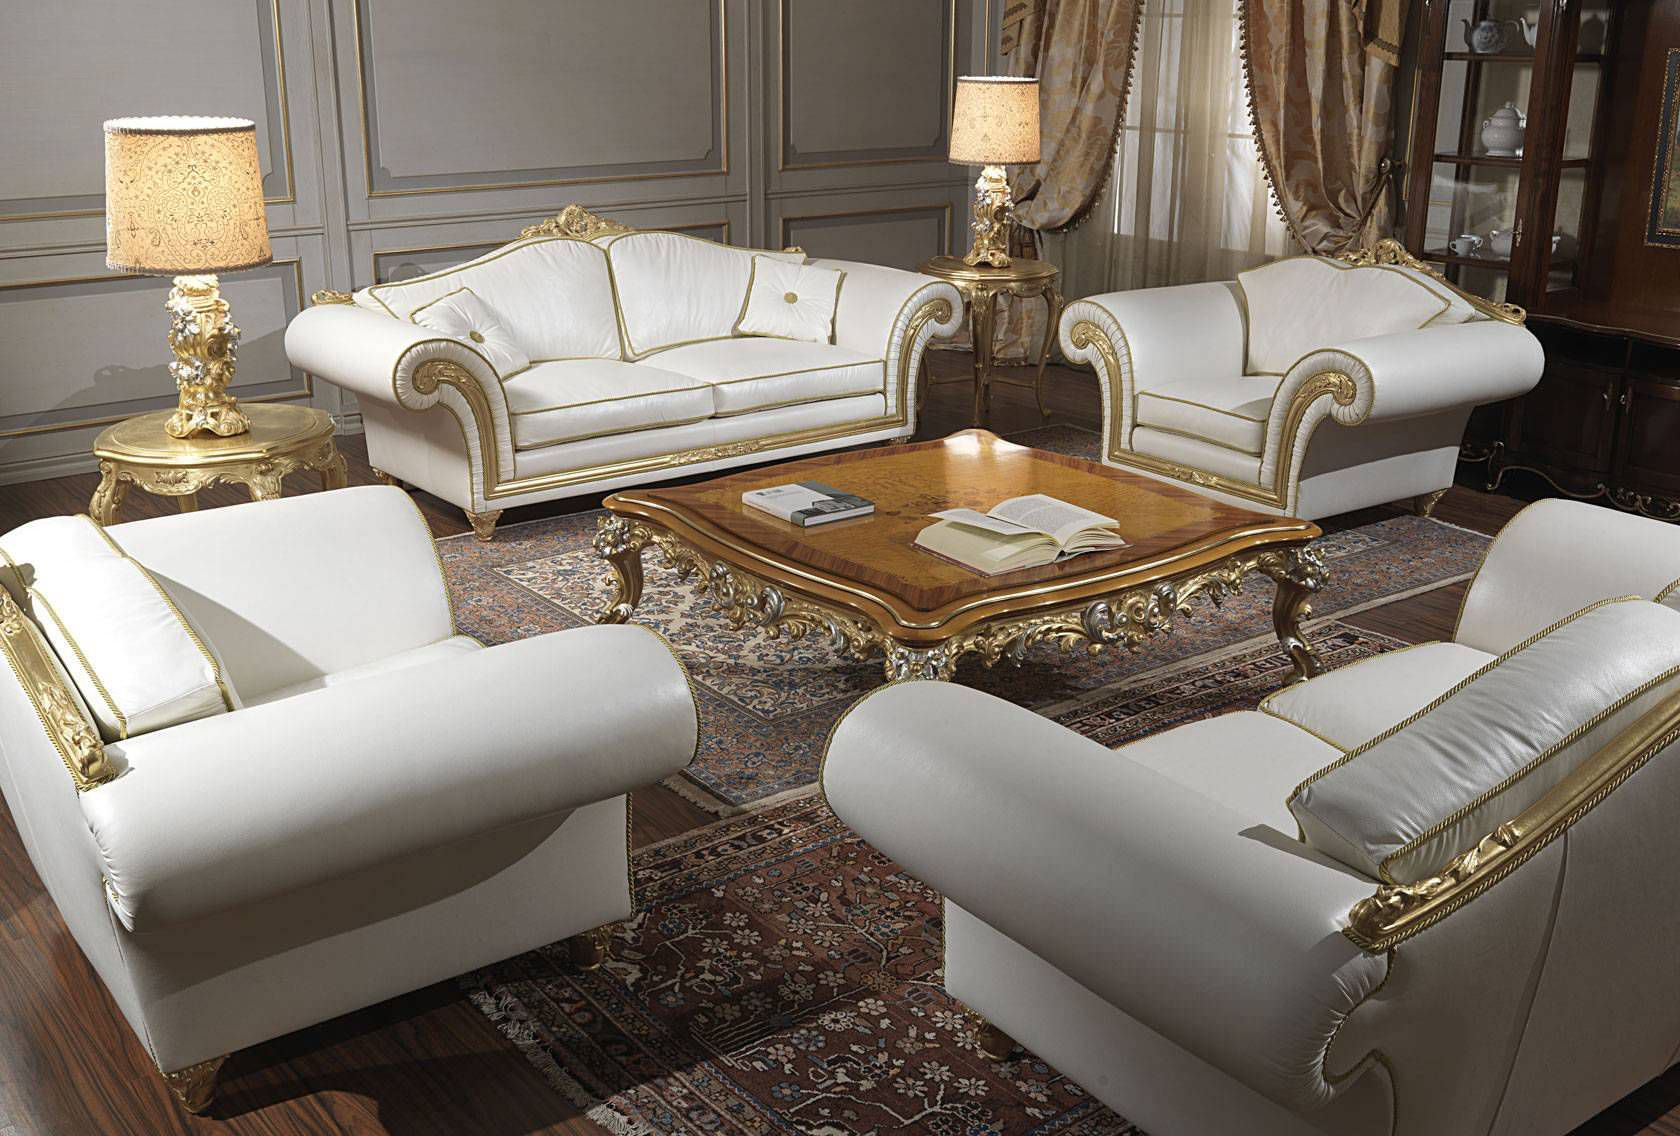 Imperial furniture - Classic Armchair Leather Imperial Vimercati Meda Luxury Classic Furniture